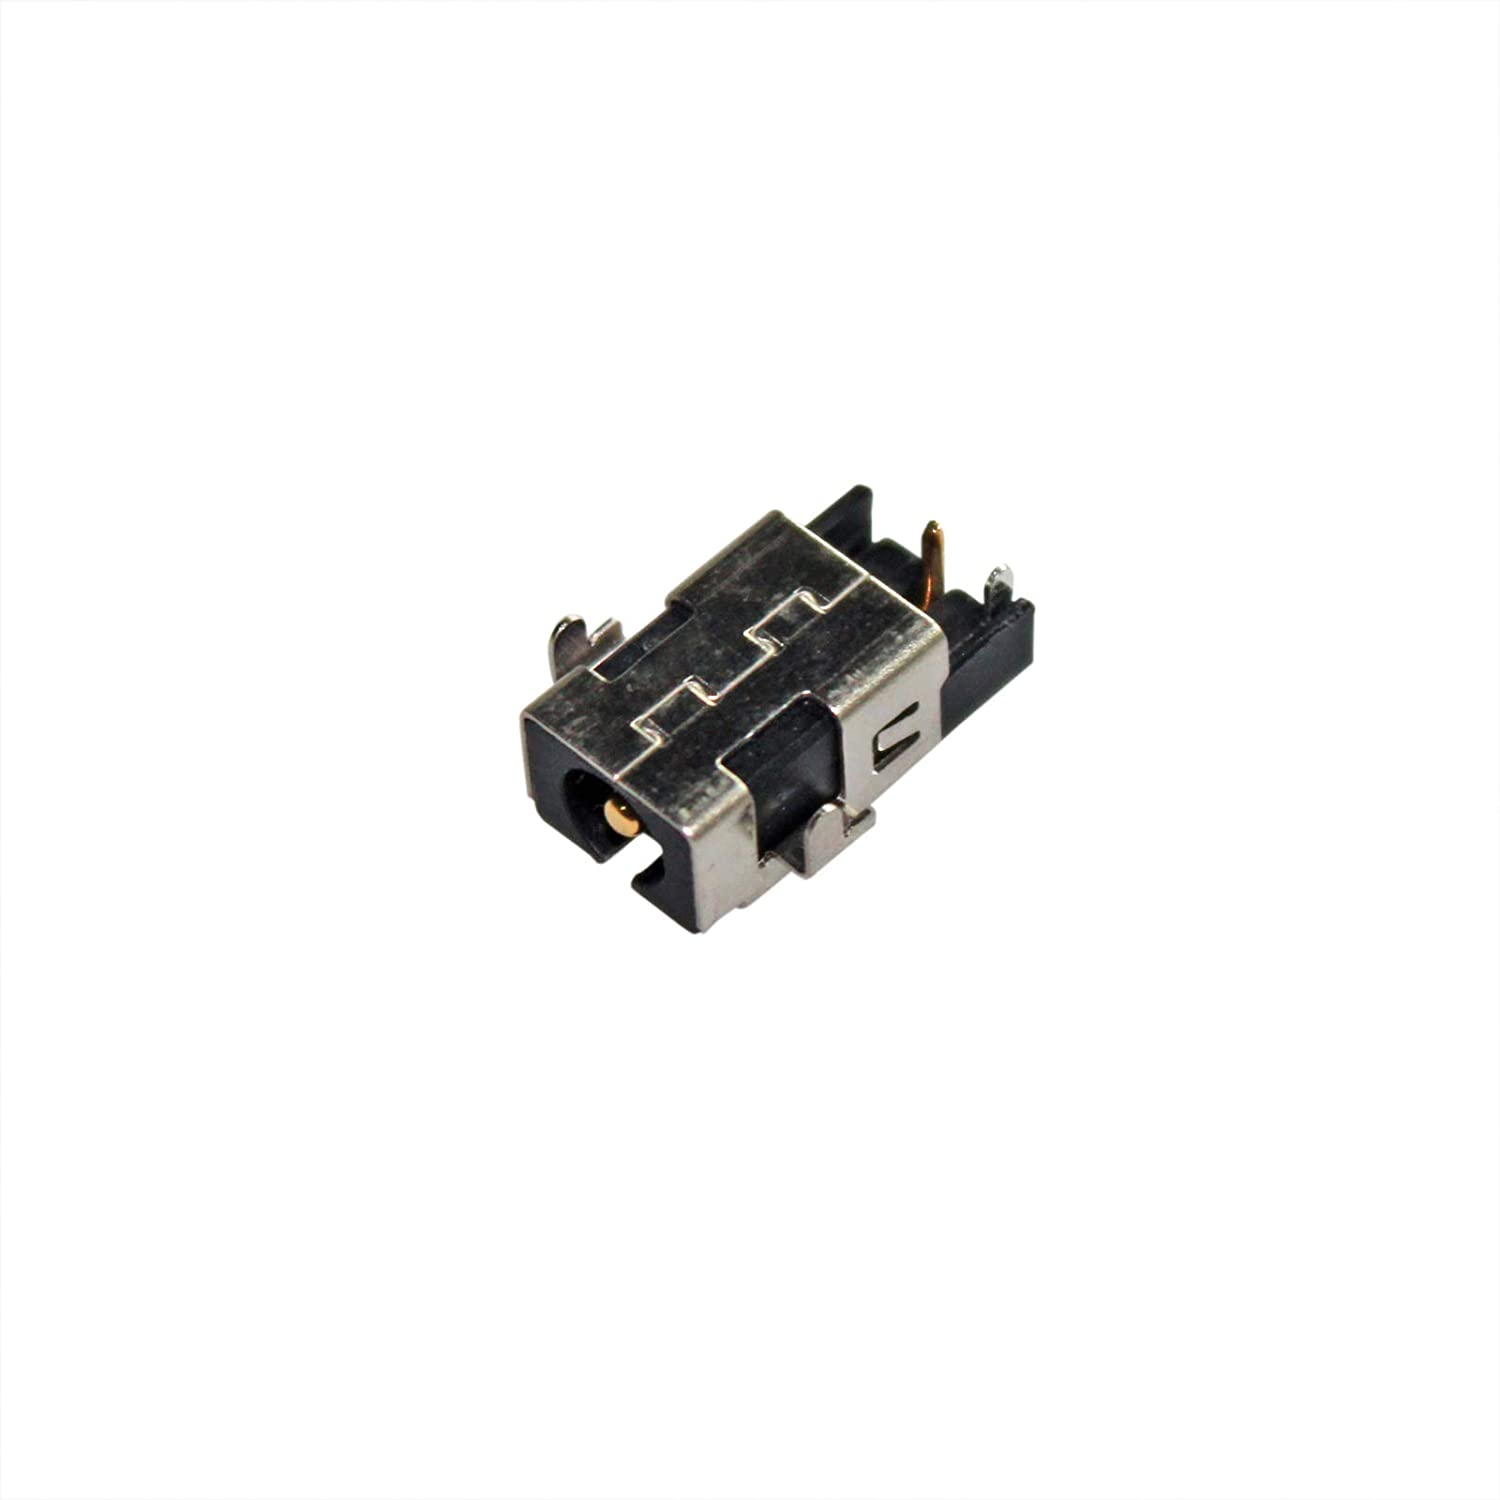 Zahara 10PCS DC Power Jack Socket Charging Port Plug Replacement for Dell Vostro 5460 5560 5470